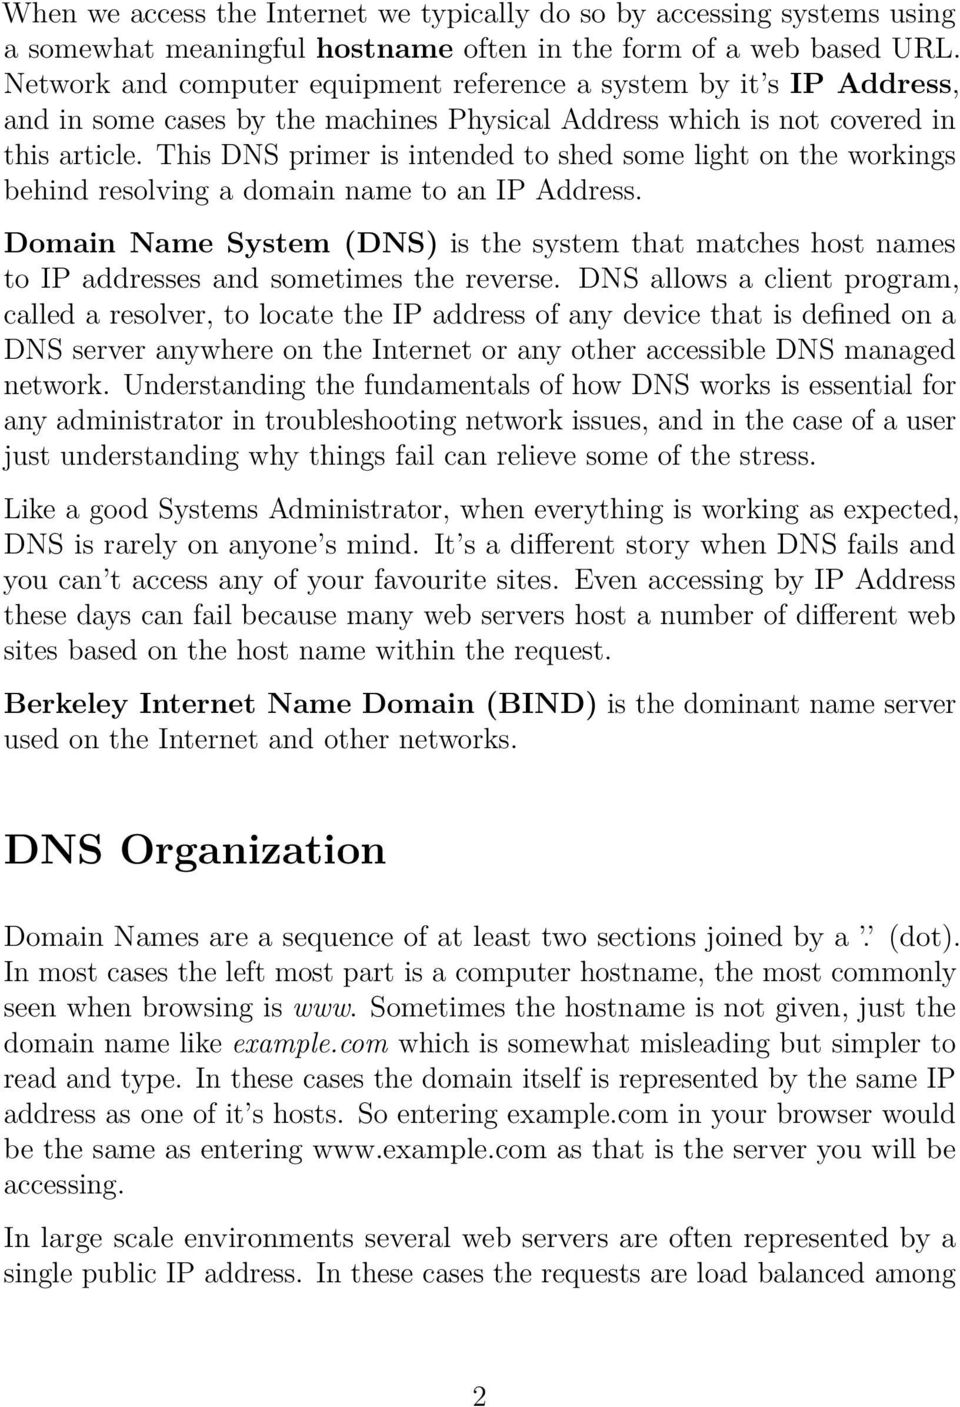 This DNS primer is intended to shed some light on the workings behind resolving a domain name to an IP Address.